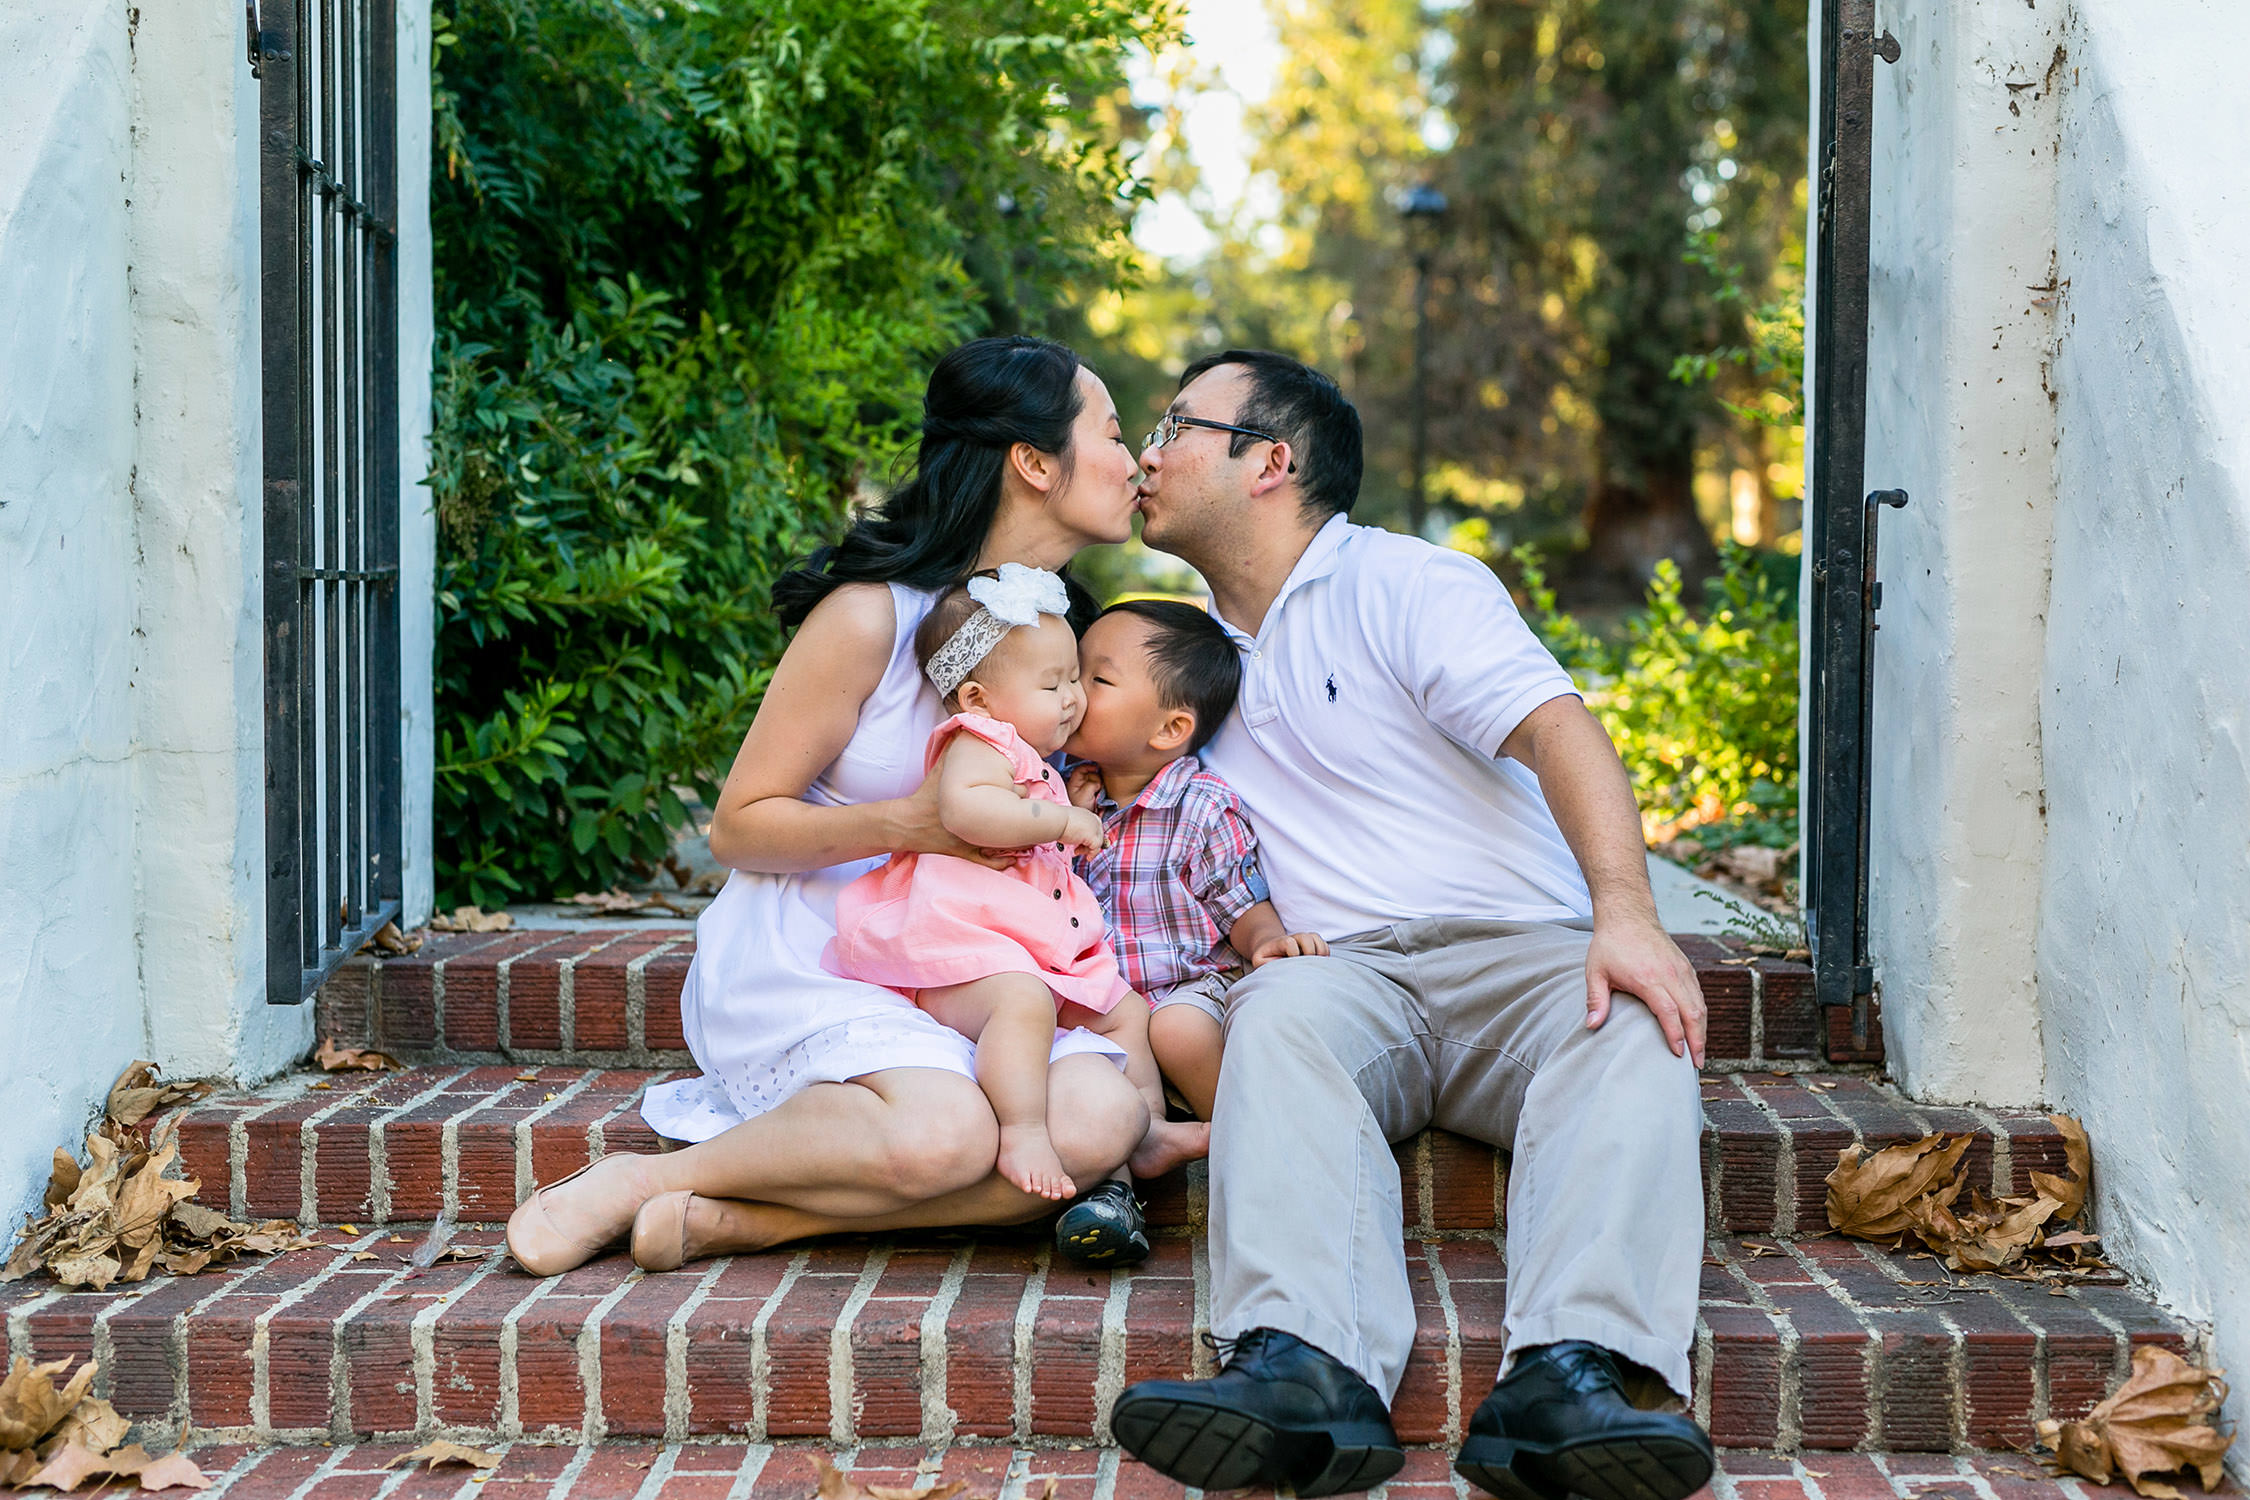 family portraits session at the Mckenna College in Claremont, California